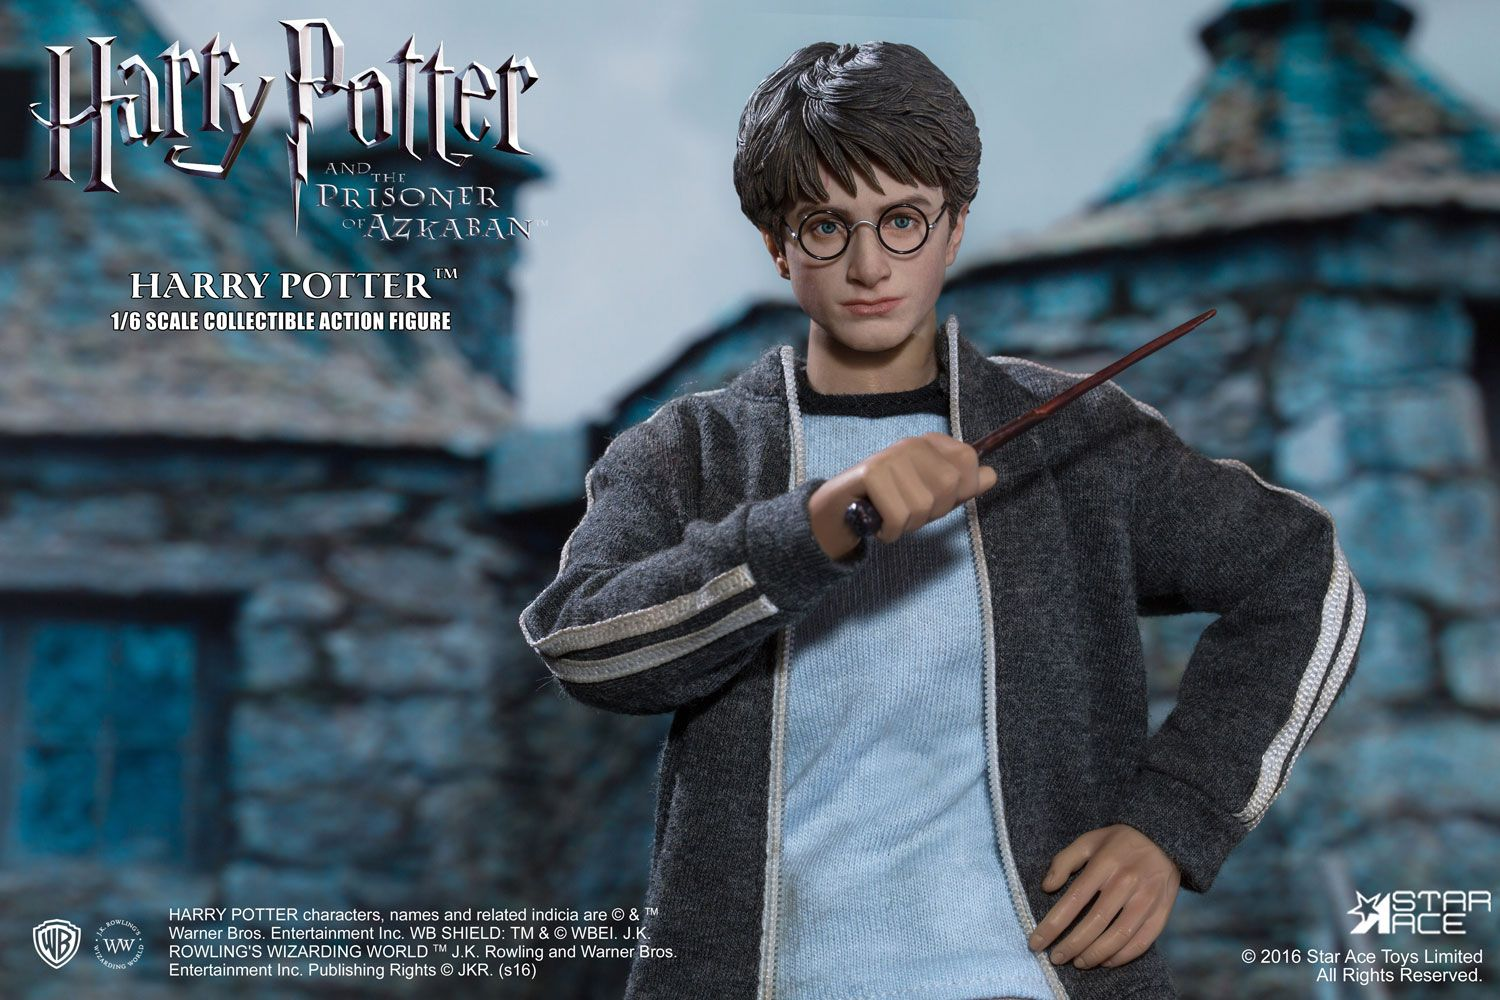 Harry Potter webwinkel by the Captain